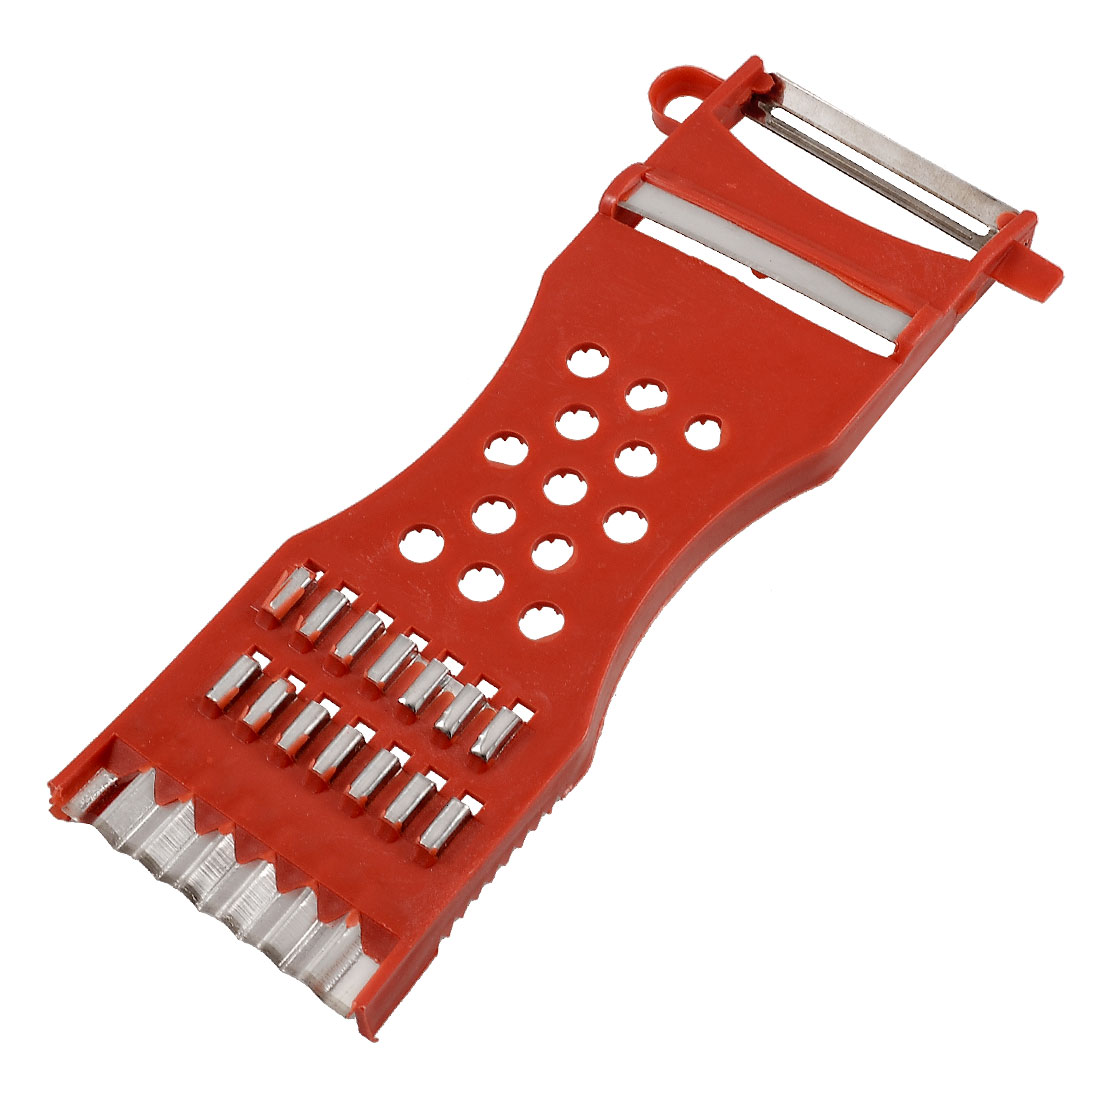 Red Plastic 2 in 1 Kitchen Grater Slicer Vegetable Potato Holder Cutter